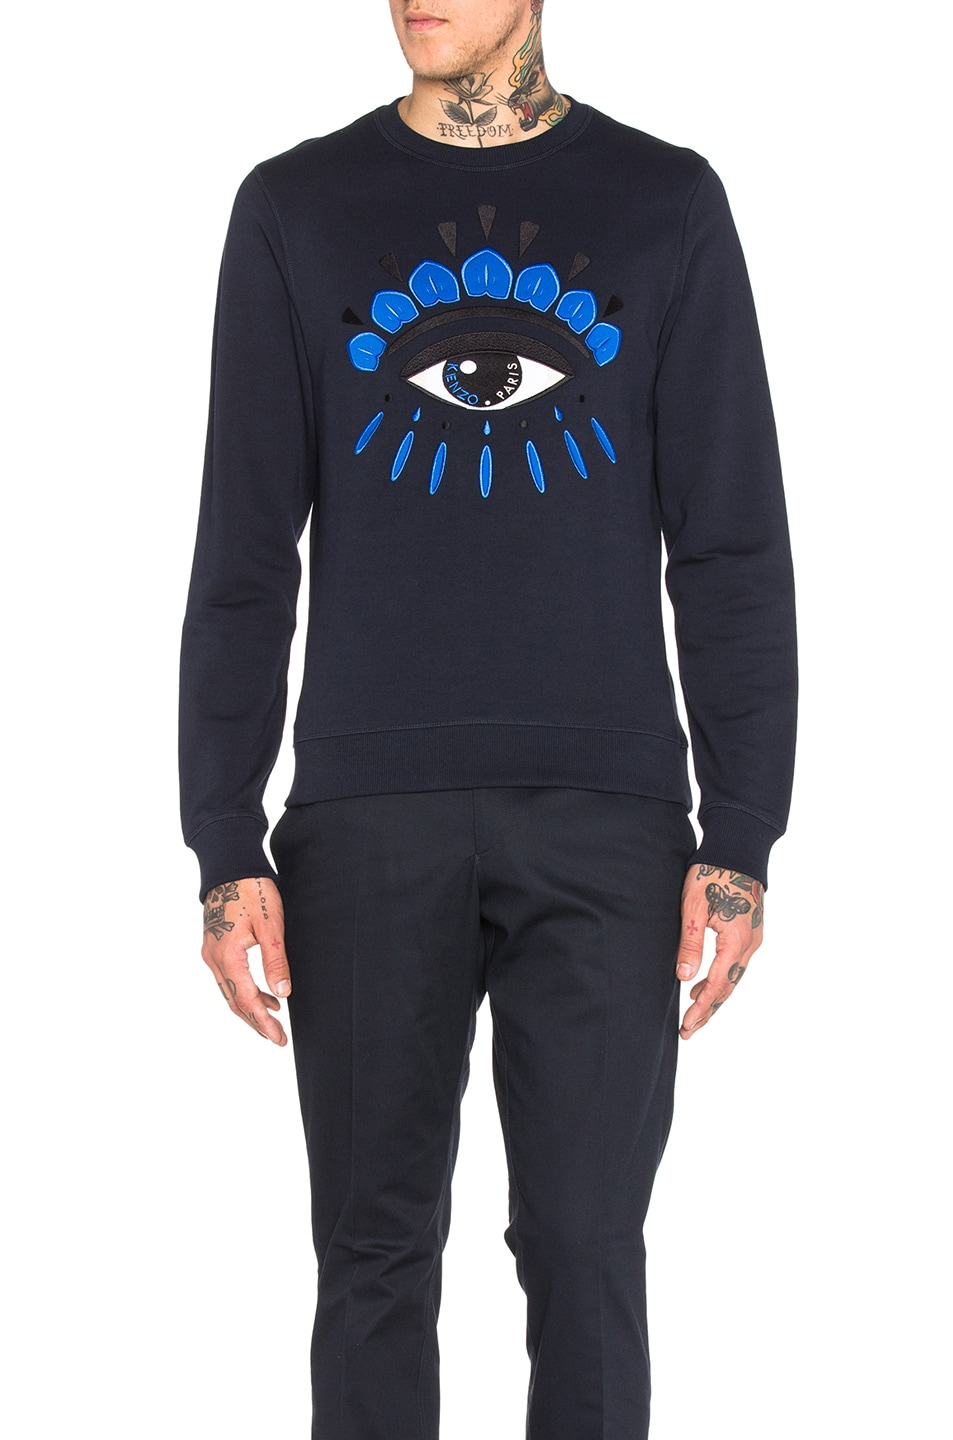 Image 1 of KENZO Classic Eye Sweatshirt in Midnight Blue